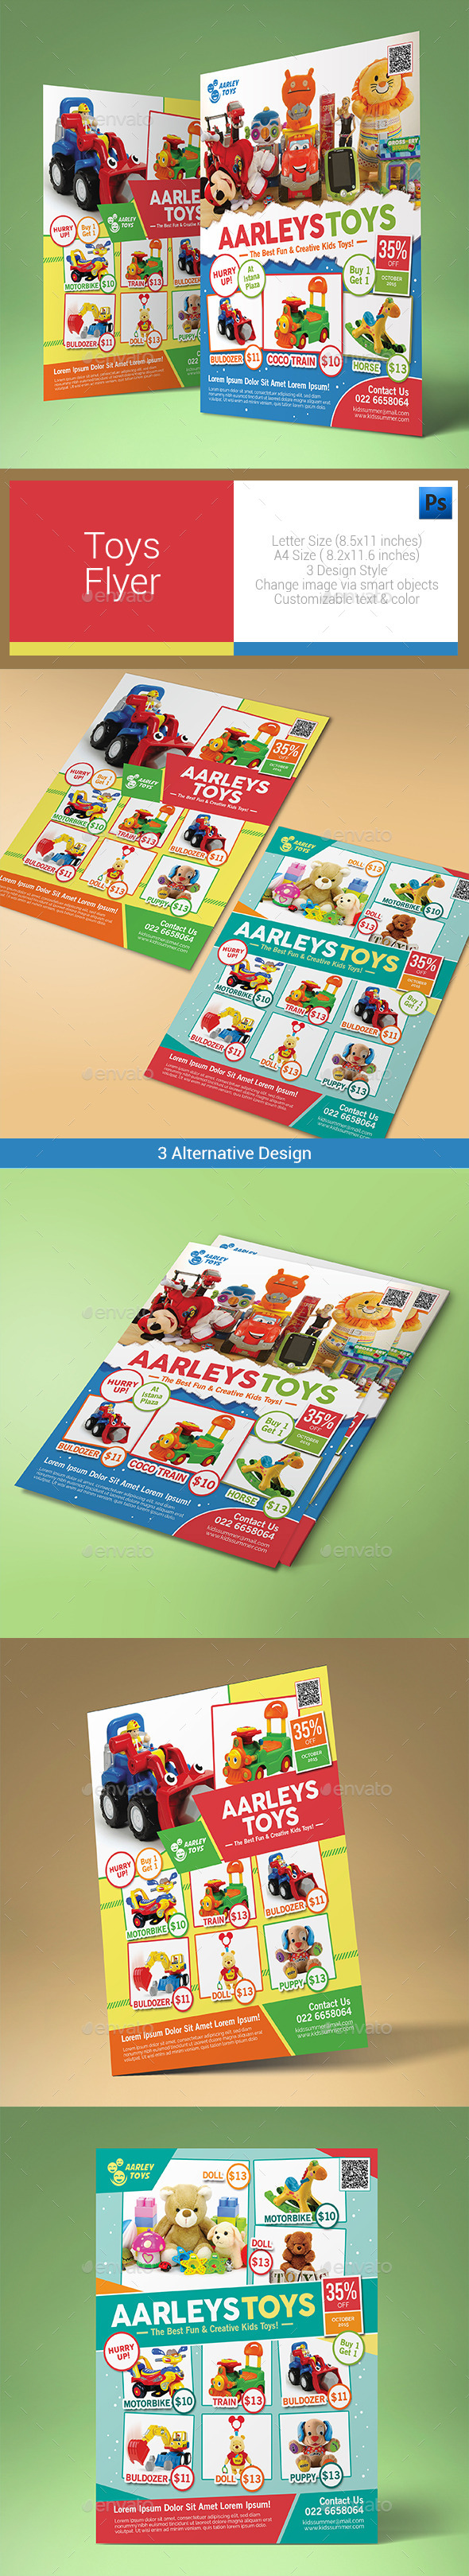 Toys Flyer - Corporate Flyers